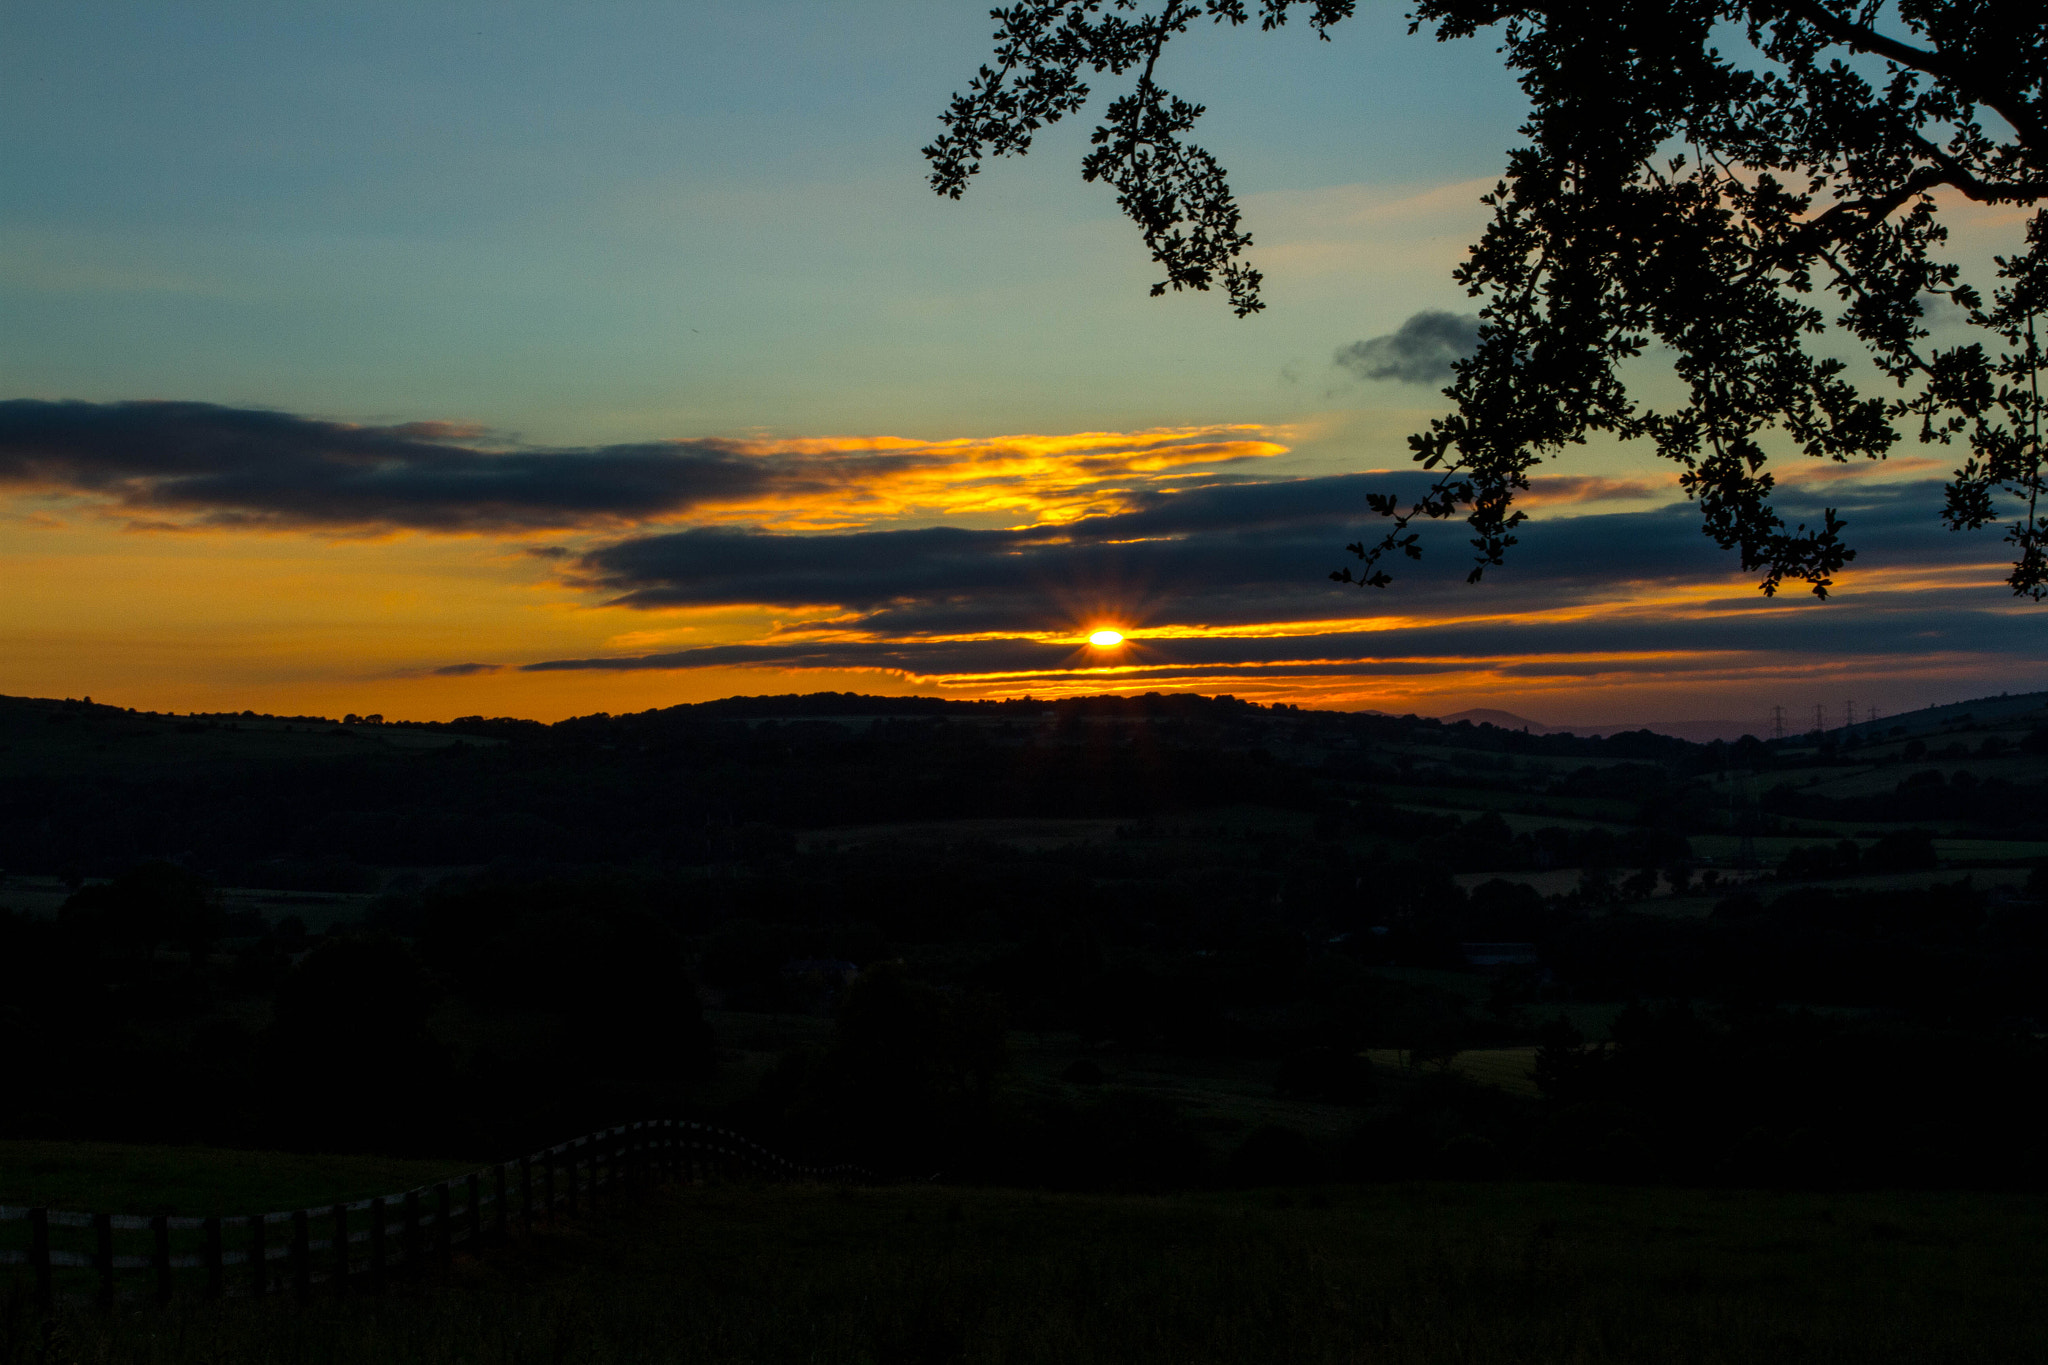 Photograph Sunset in the Cotswolds by Naomi Turner on 500px